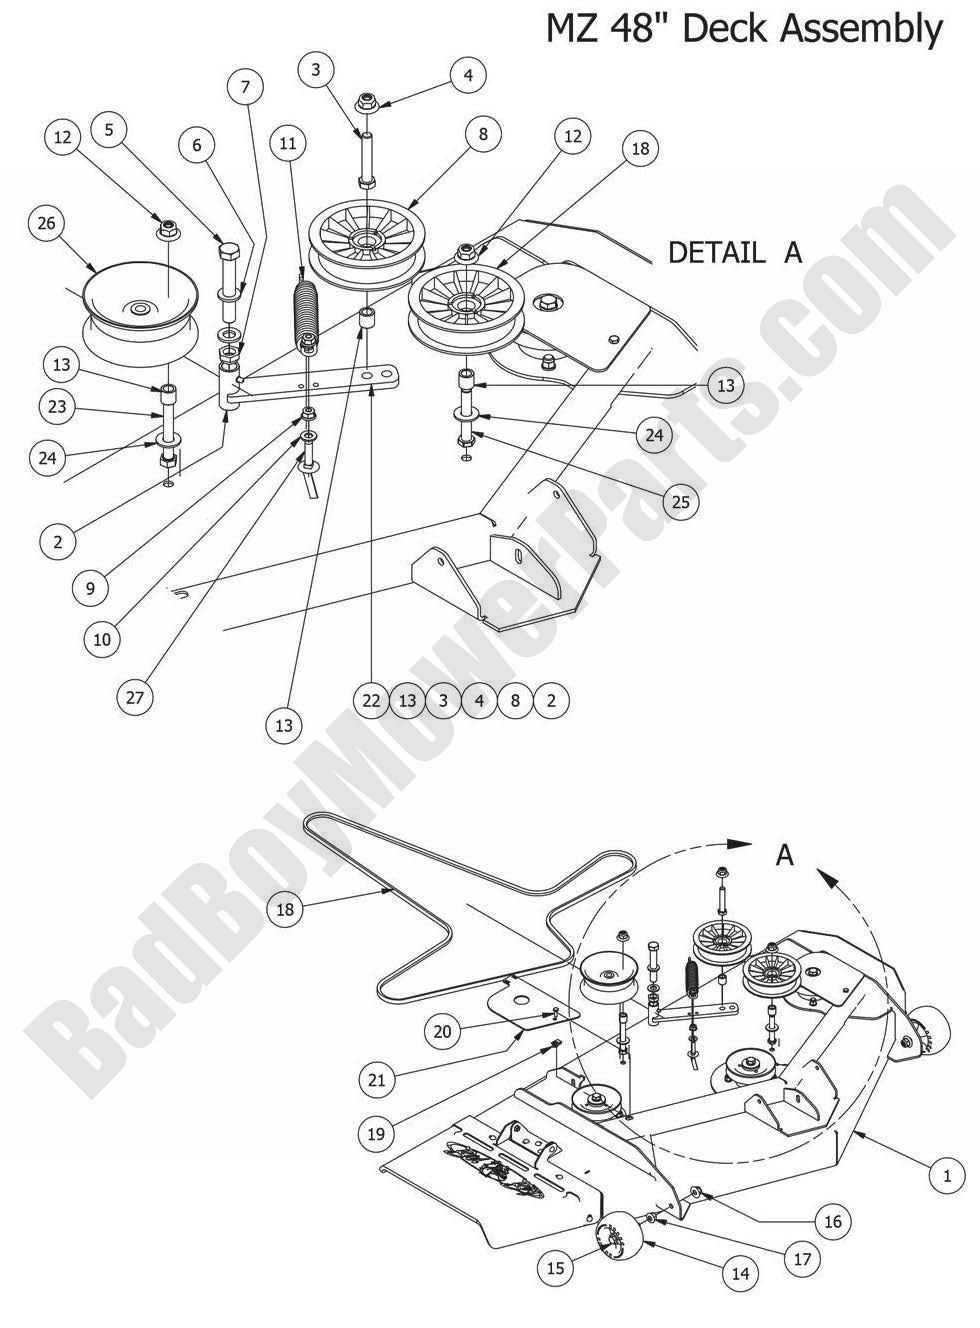 Bad Boy Mower Wiring Diagram. Wiring. Wiring Diagram Images